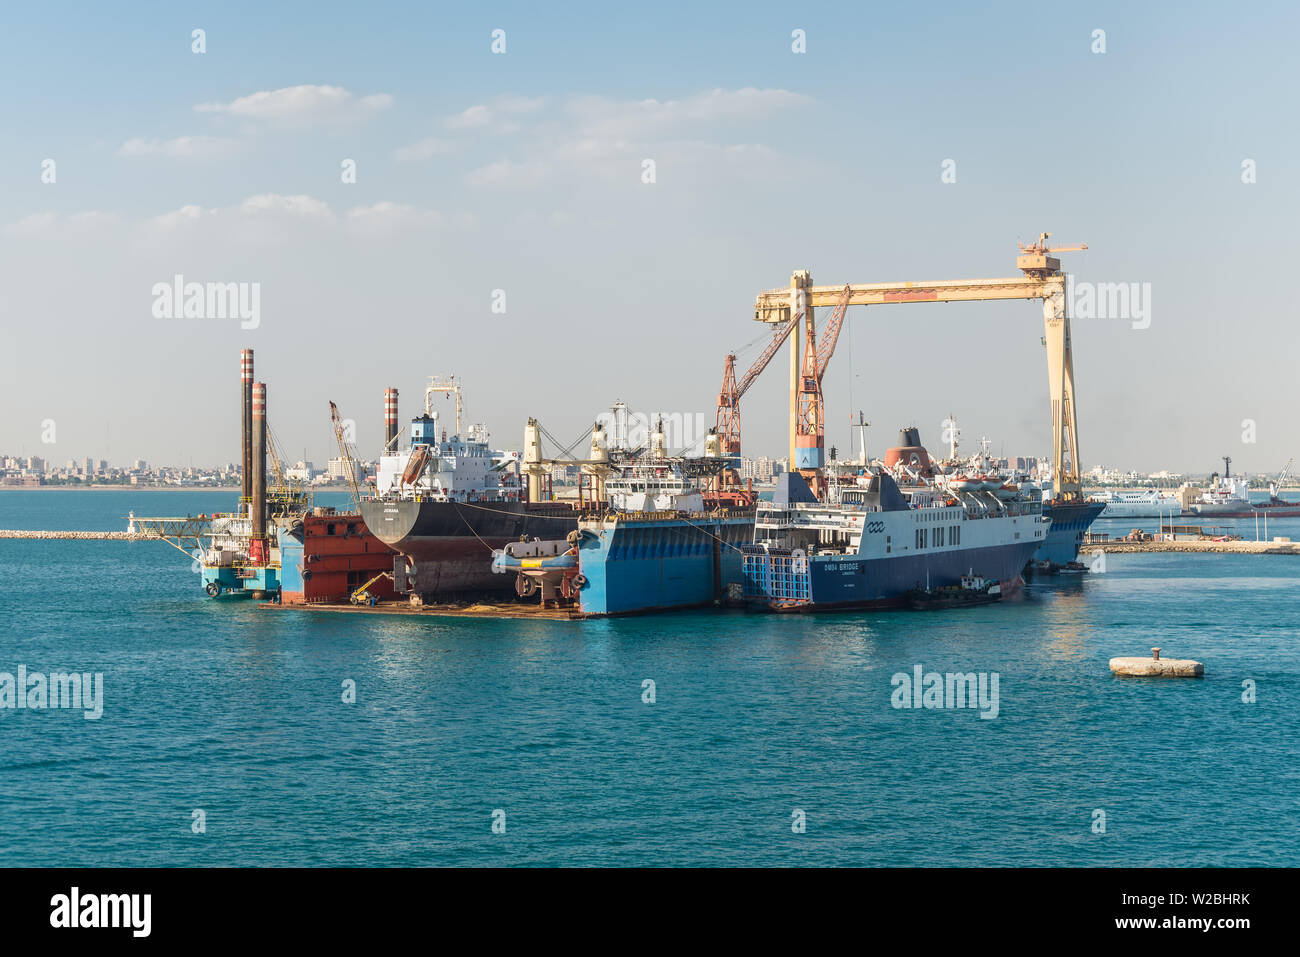 Port Tewfik, Egypt - November 5, 2017: Dry dock at the Port Tewfik in the suburbs of Suez. The Suez Port is an Egyptian port located at the southern b - Stock Image